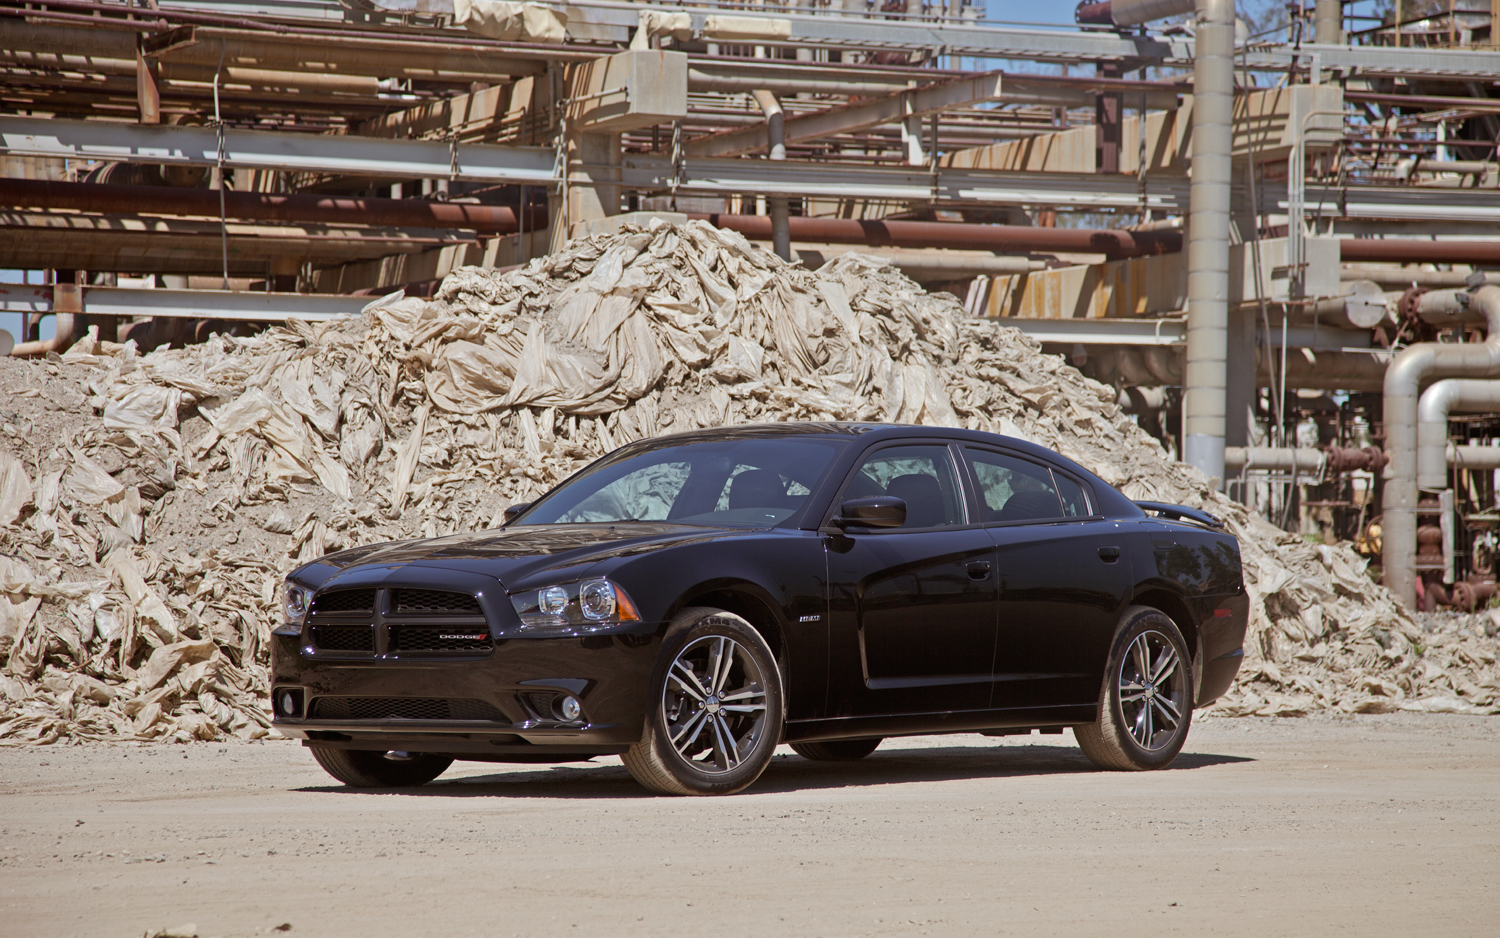 2013 Dodge Charger #22